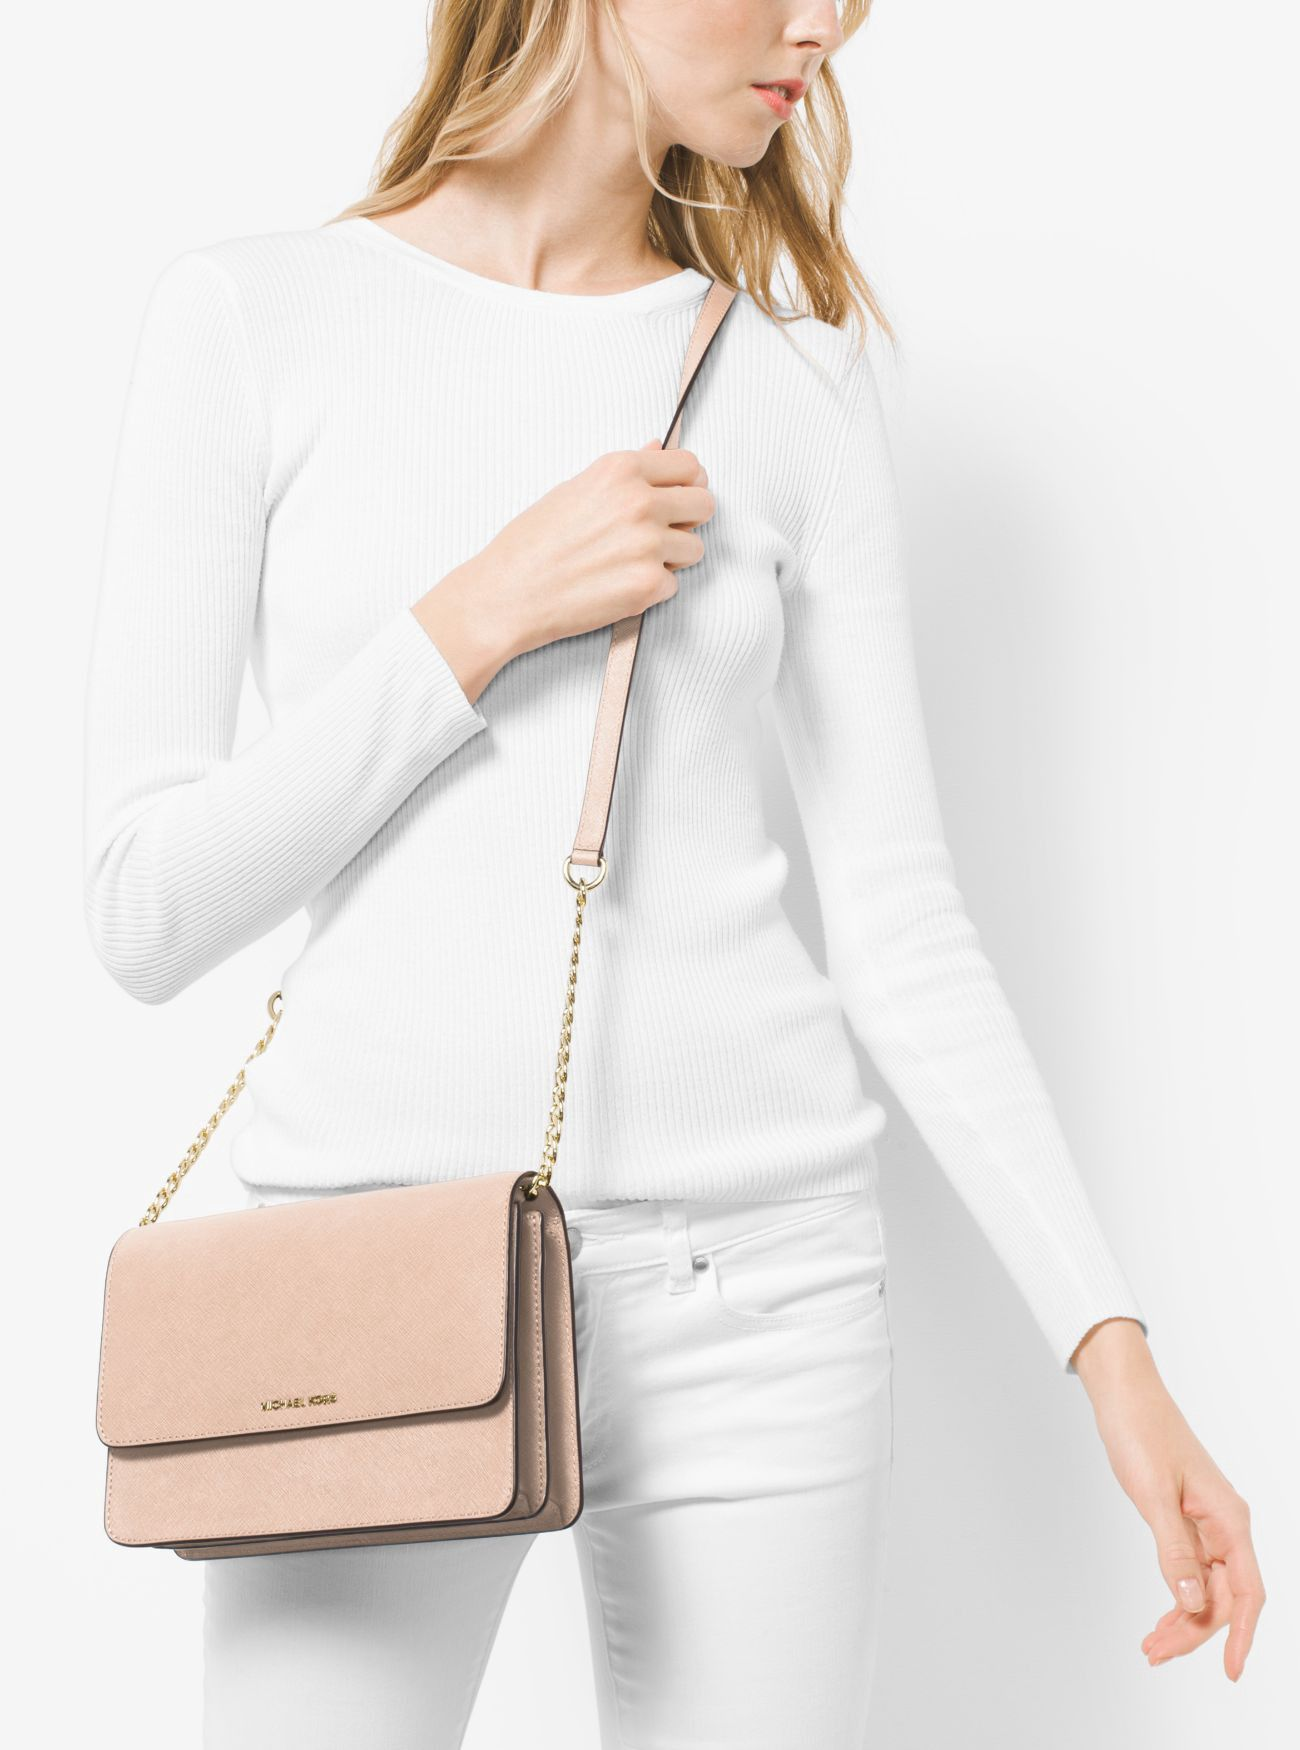 ac1fbc1a14a7 Michael Kors Daniela Large Leather Crossbody - Admiral in 2019 ...